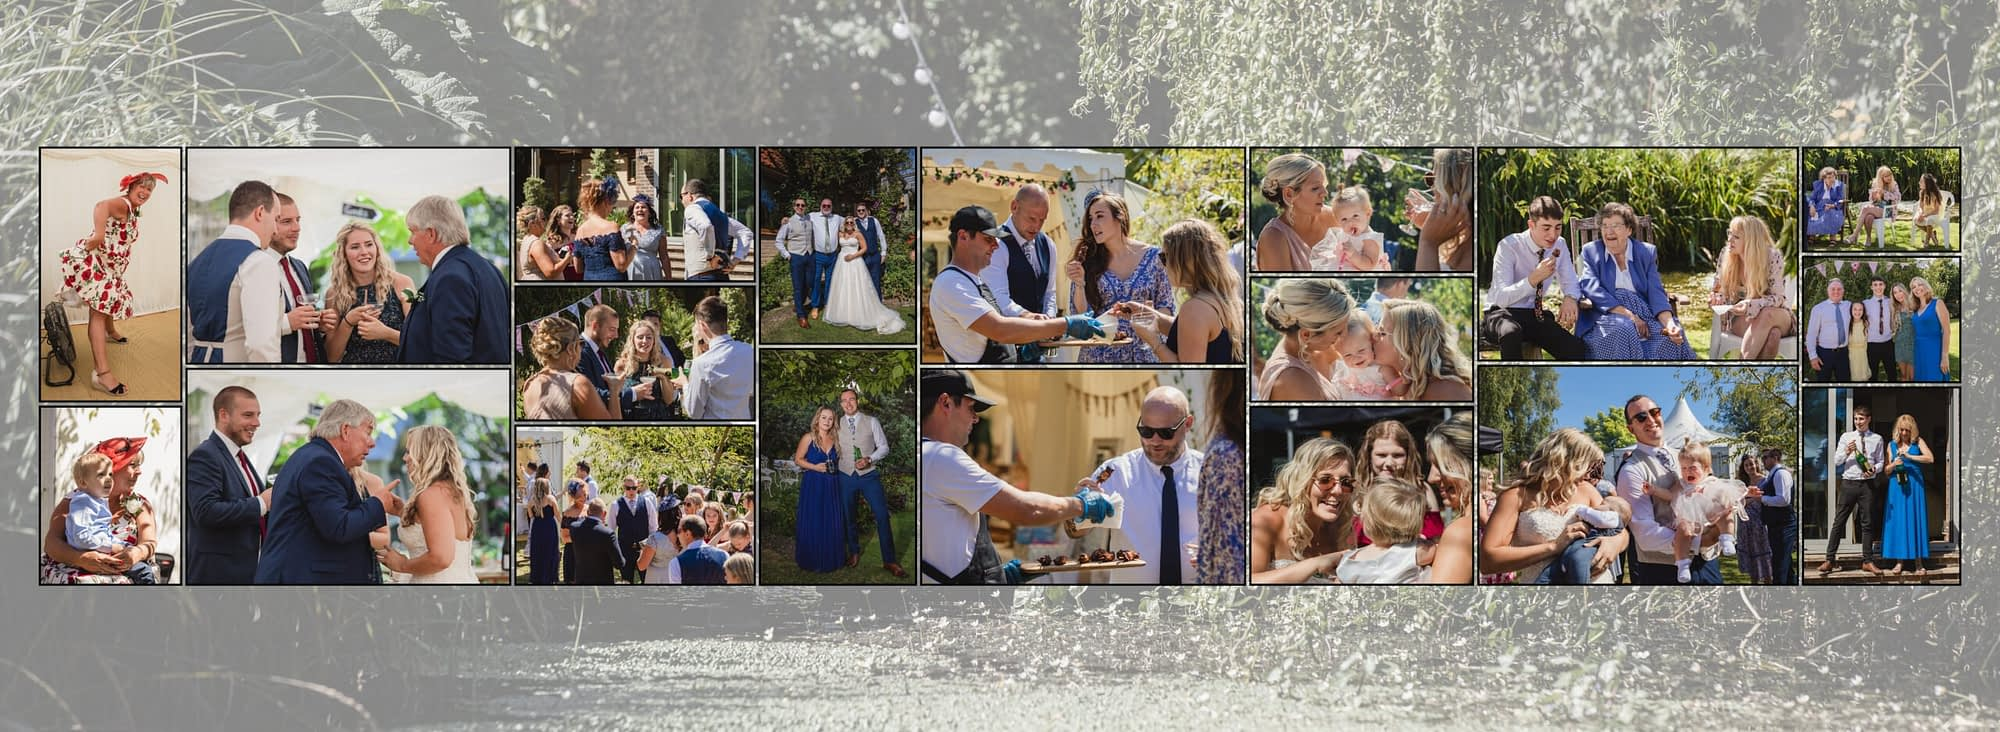 collection of photographs showing people chatting outside together